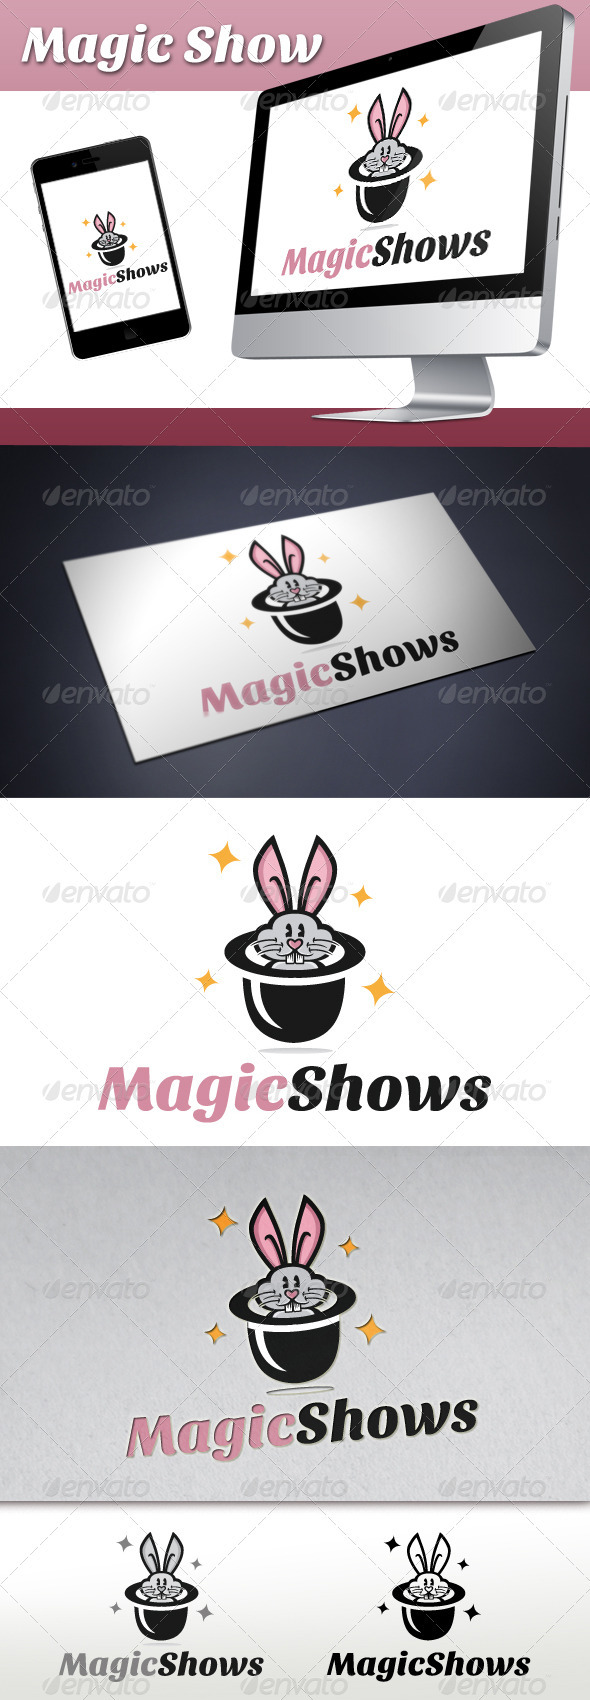 Magic Show Logo